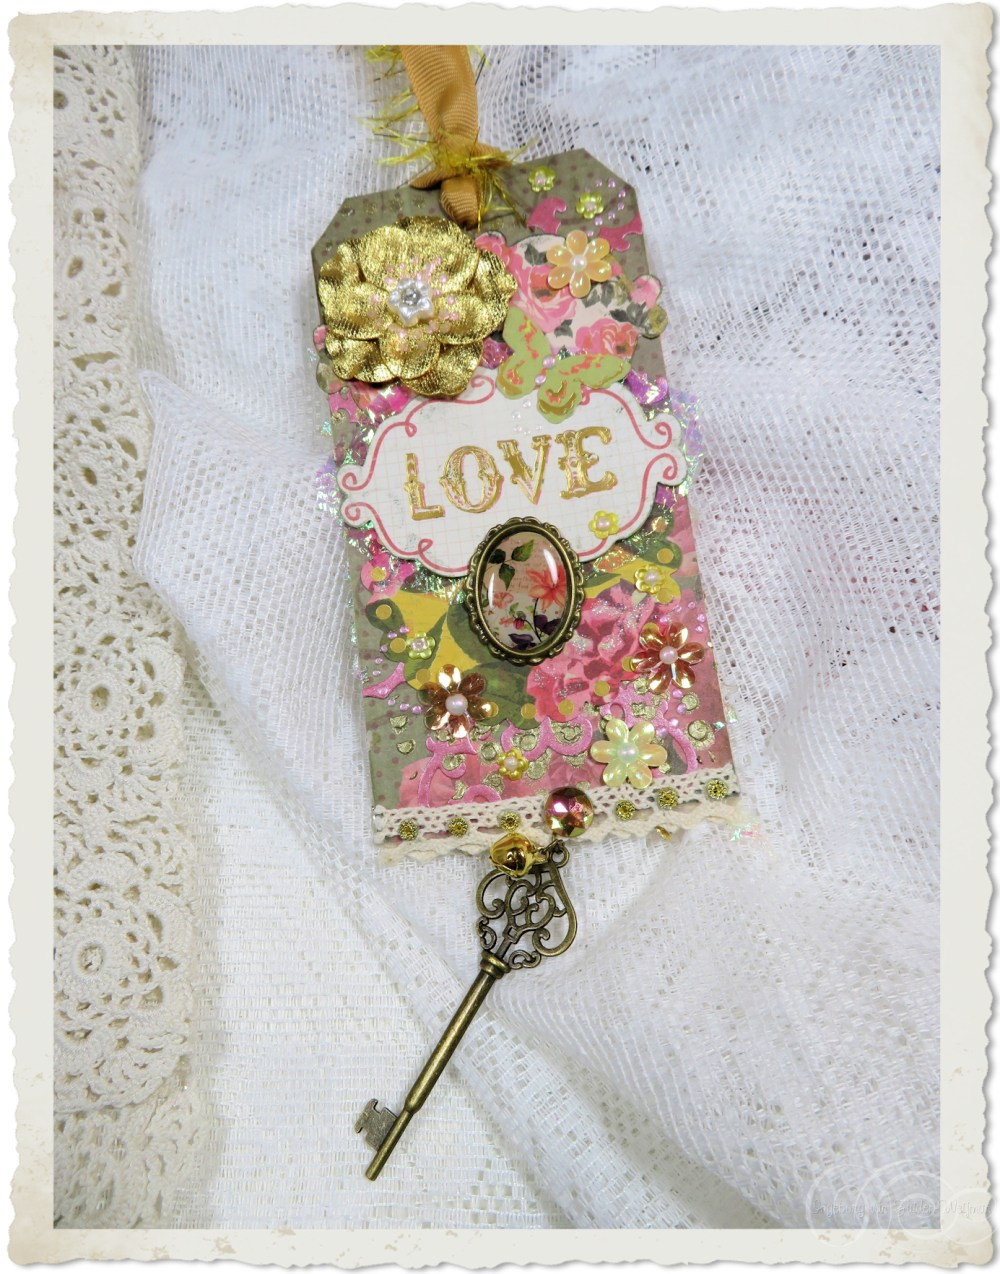 Love tag with flowers